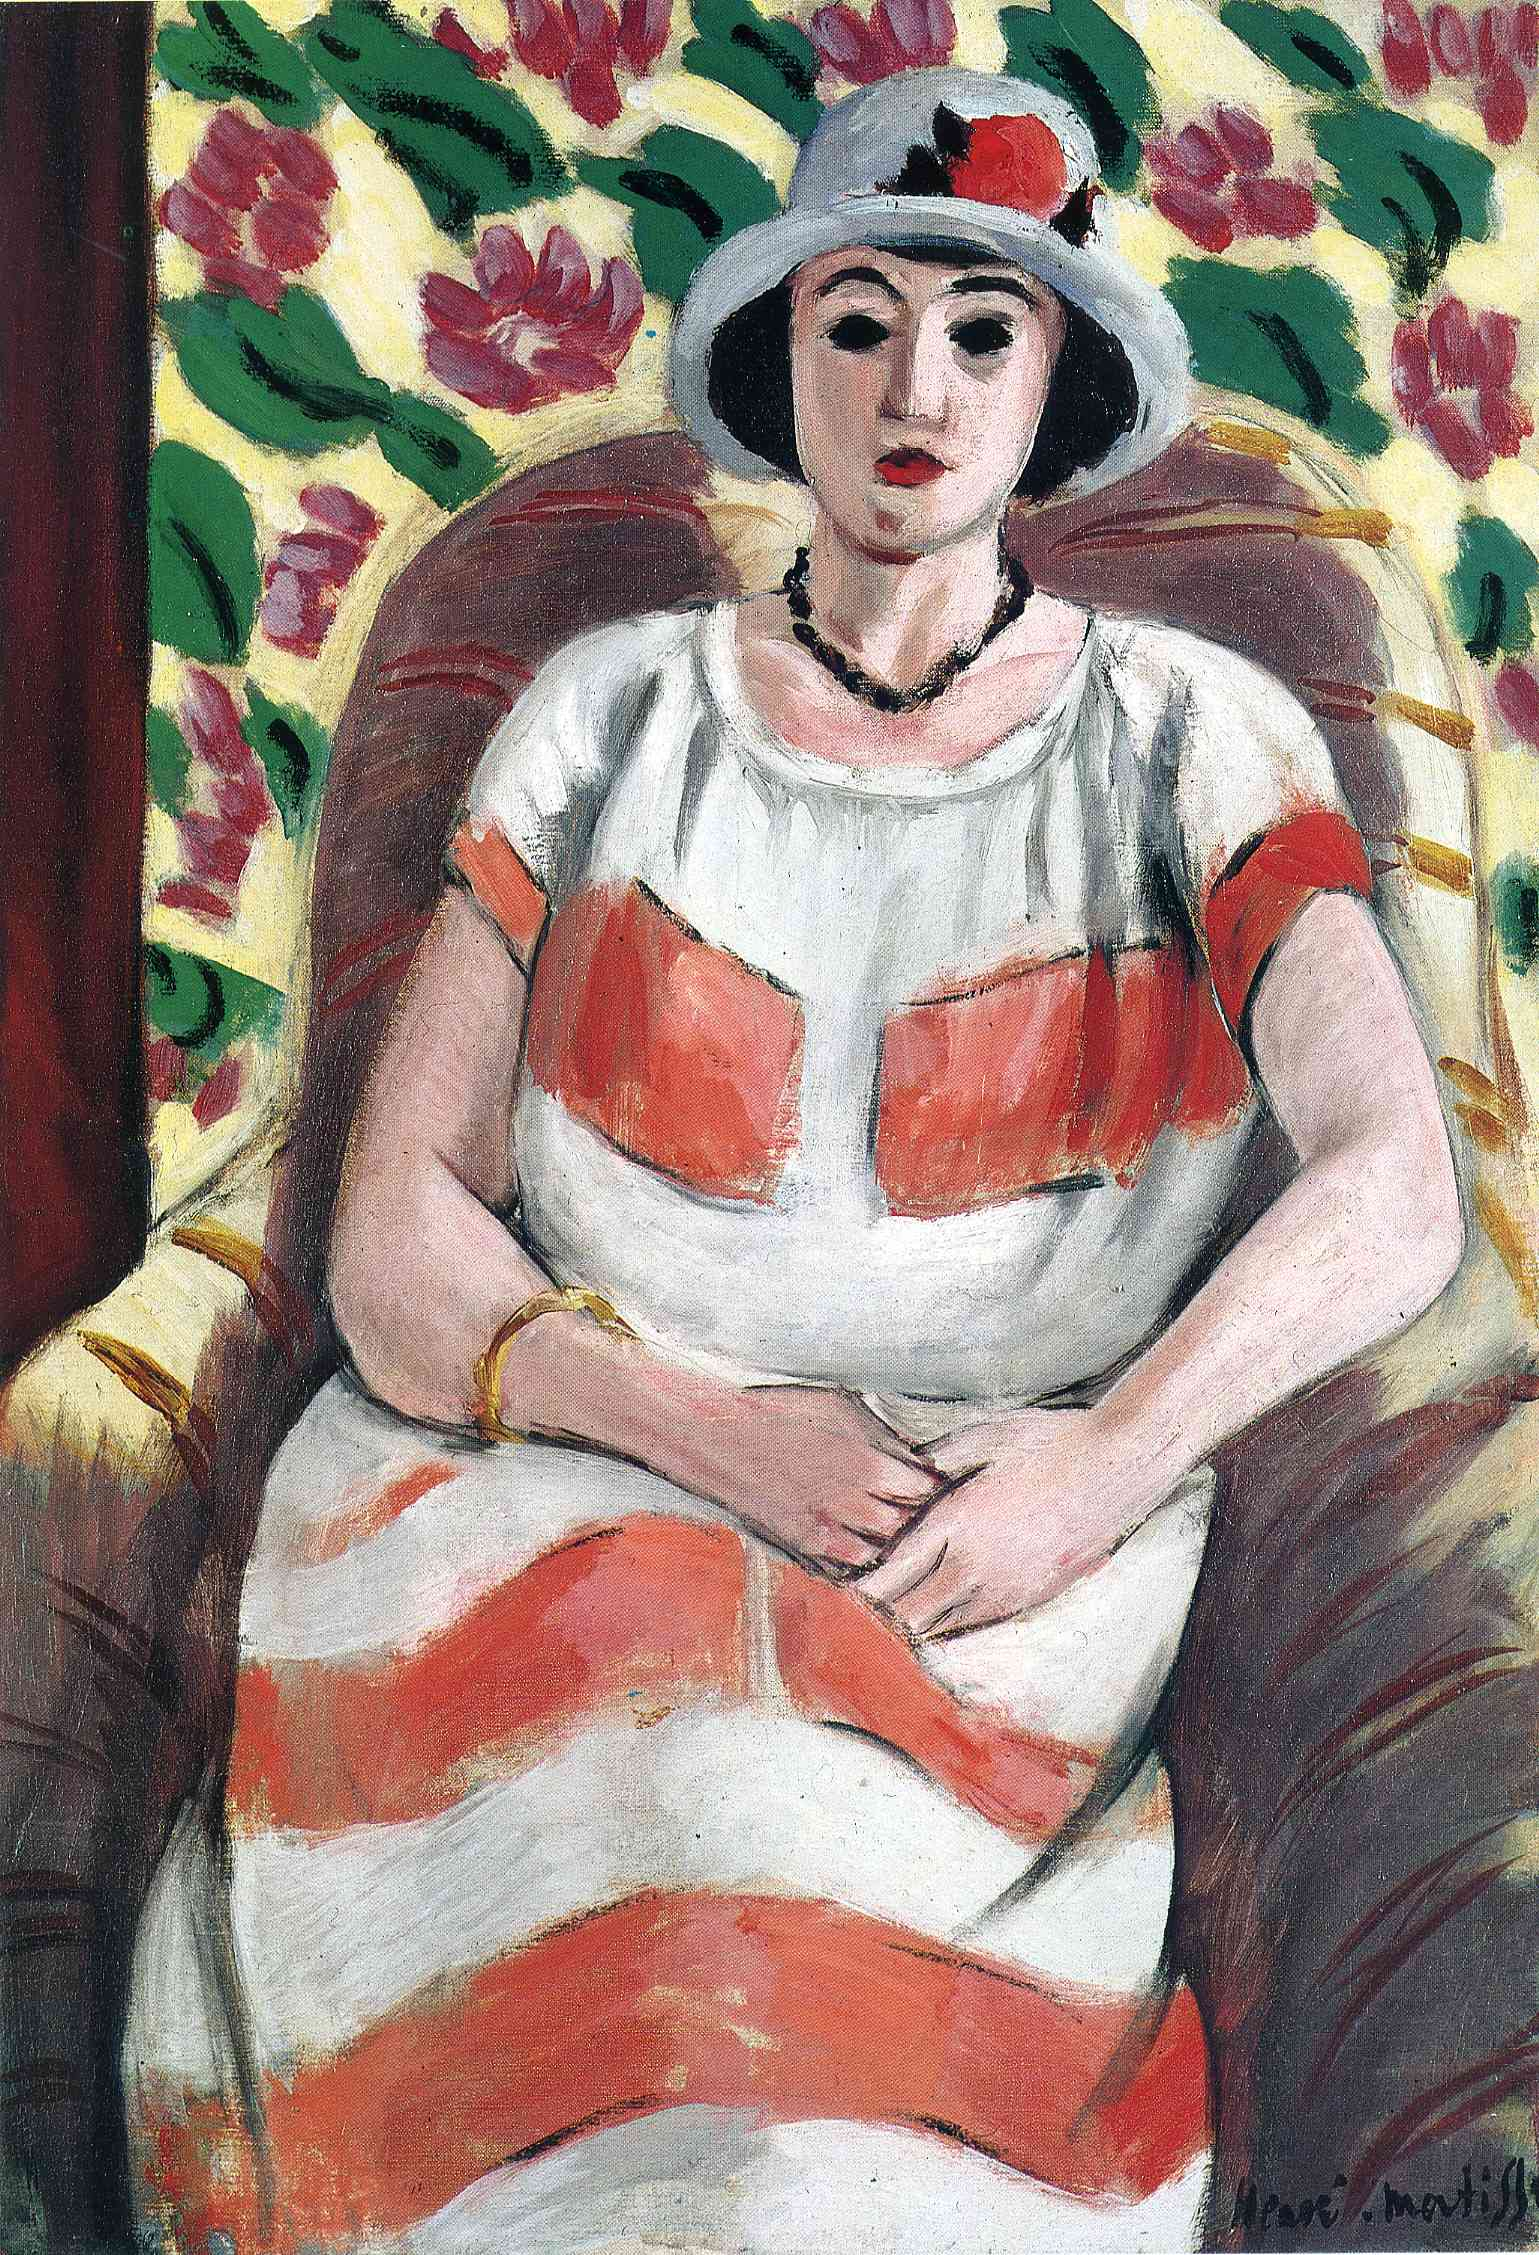 Young woman in Pink, 1923 - Henri Matisse - WikiArt.org